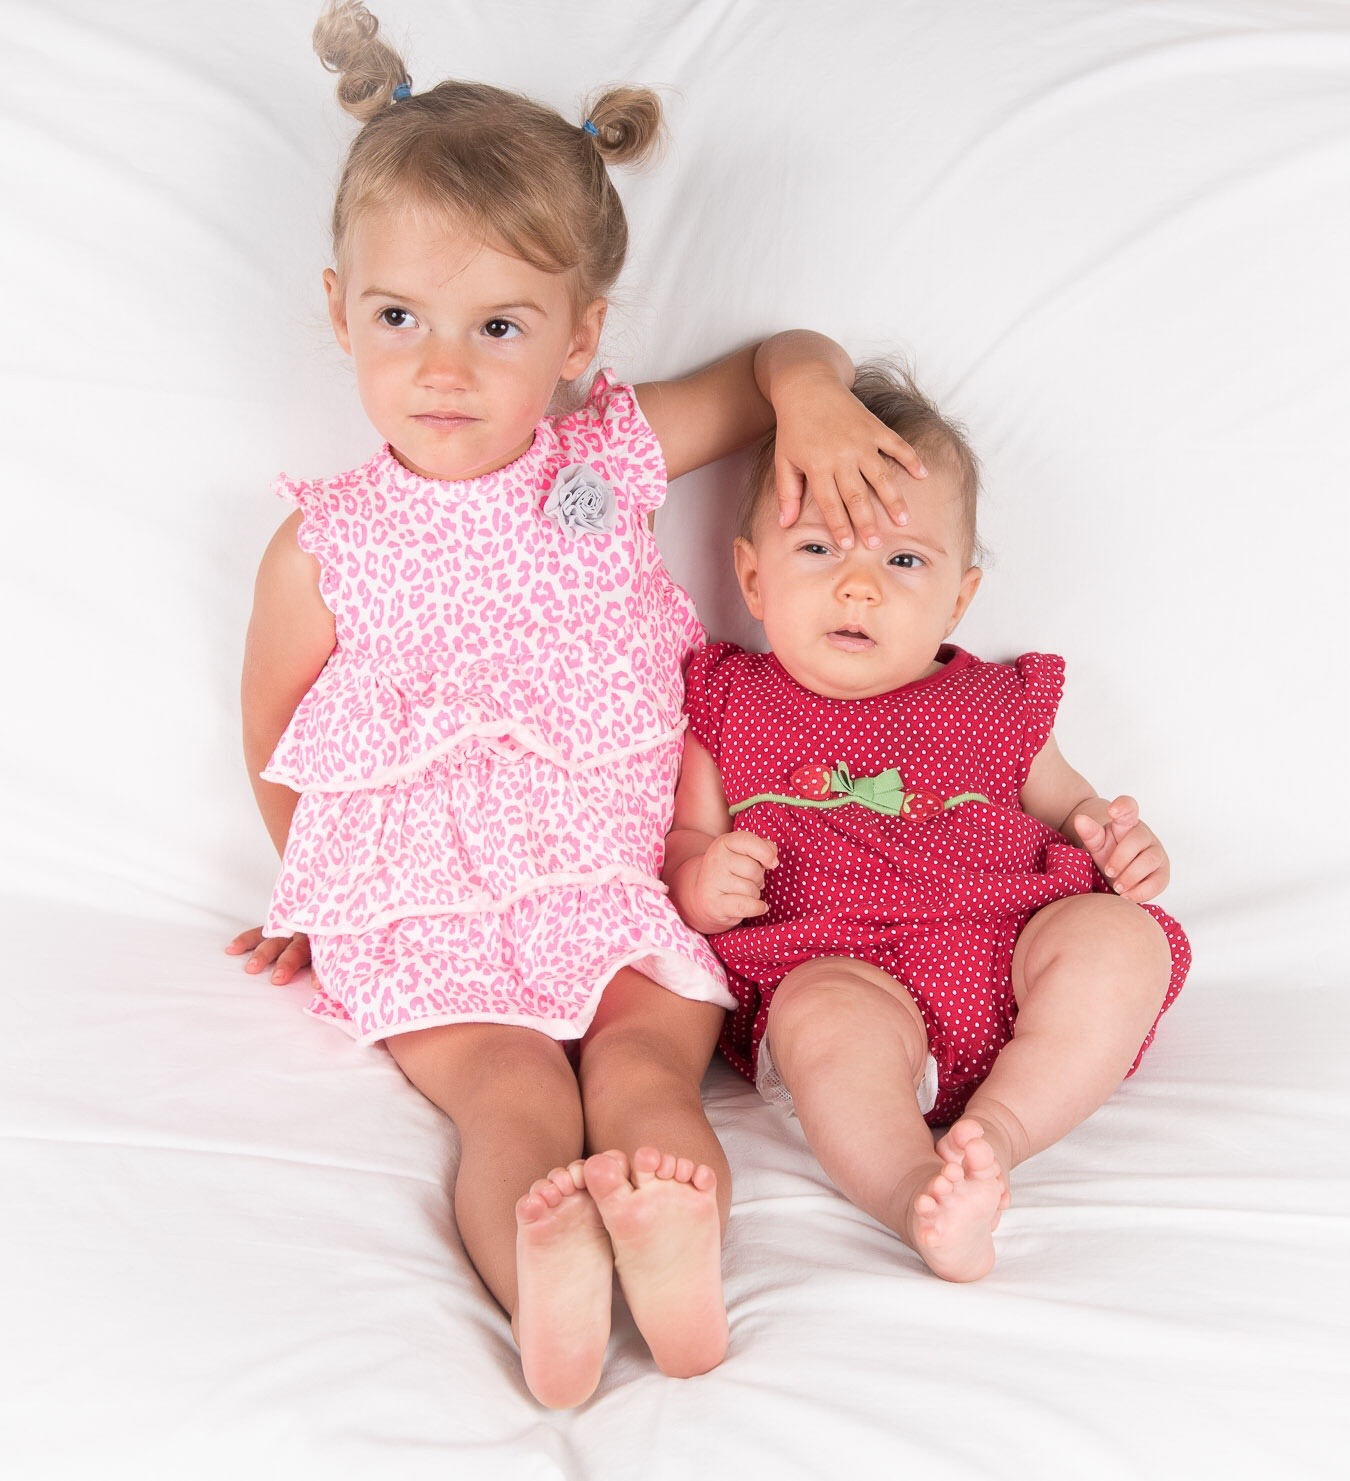 Sienna (2 years) with her younger sister (3 months)